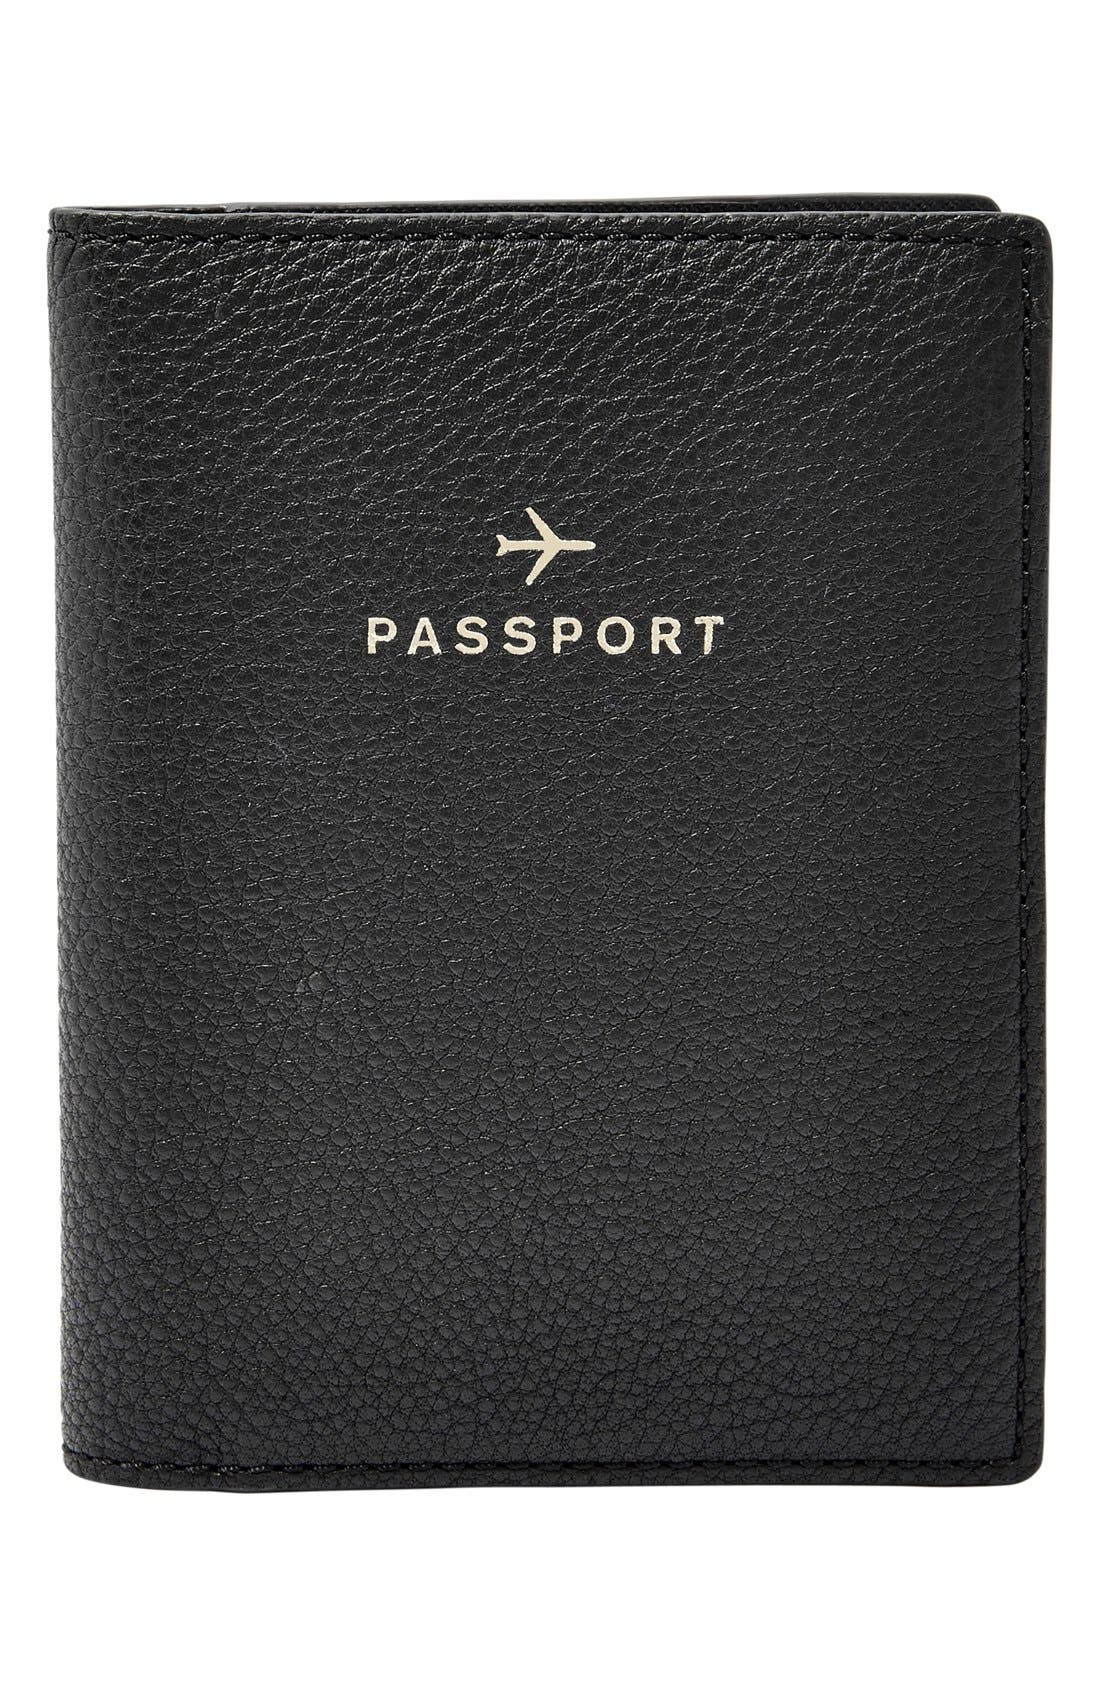 Main Image - Fossil 'RFID' Pebbled Leather Passport Case